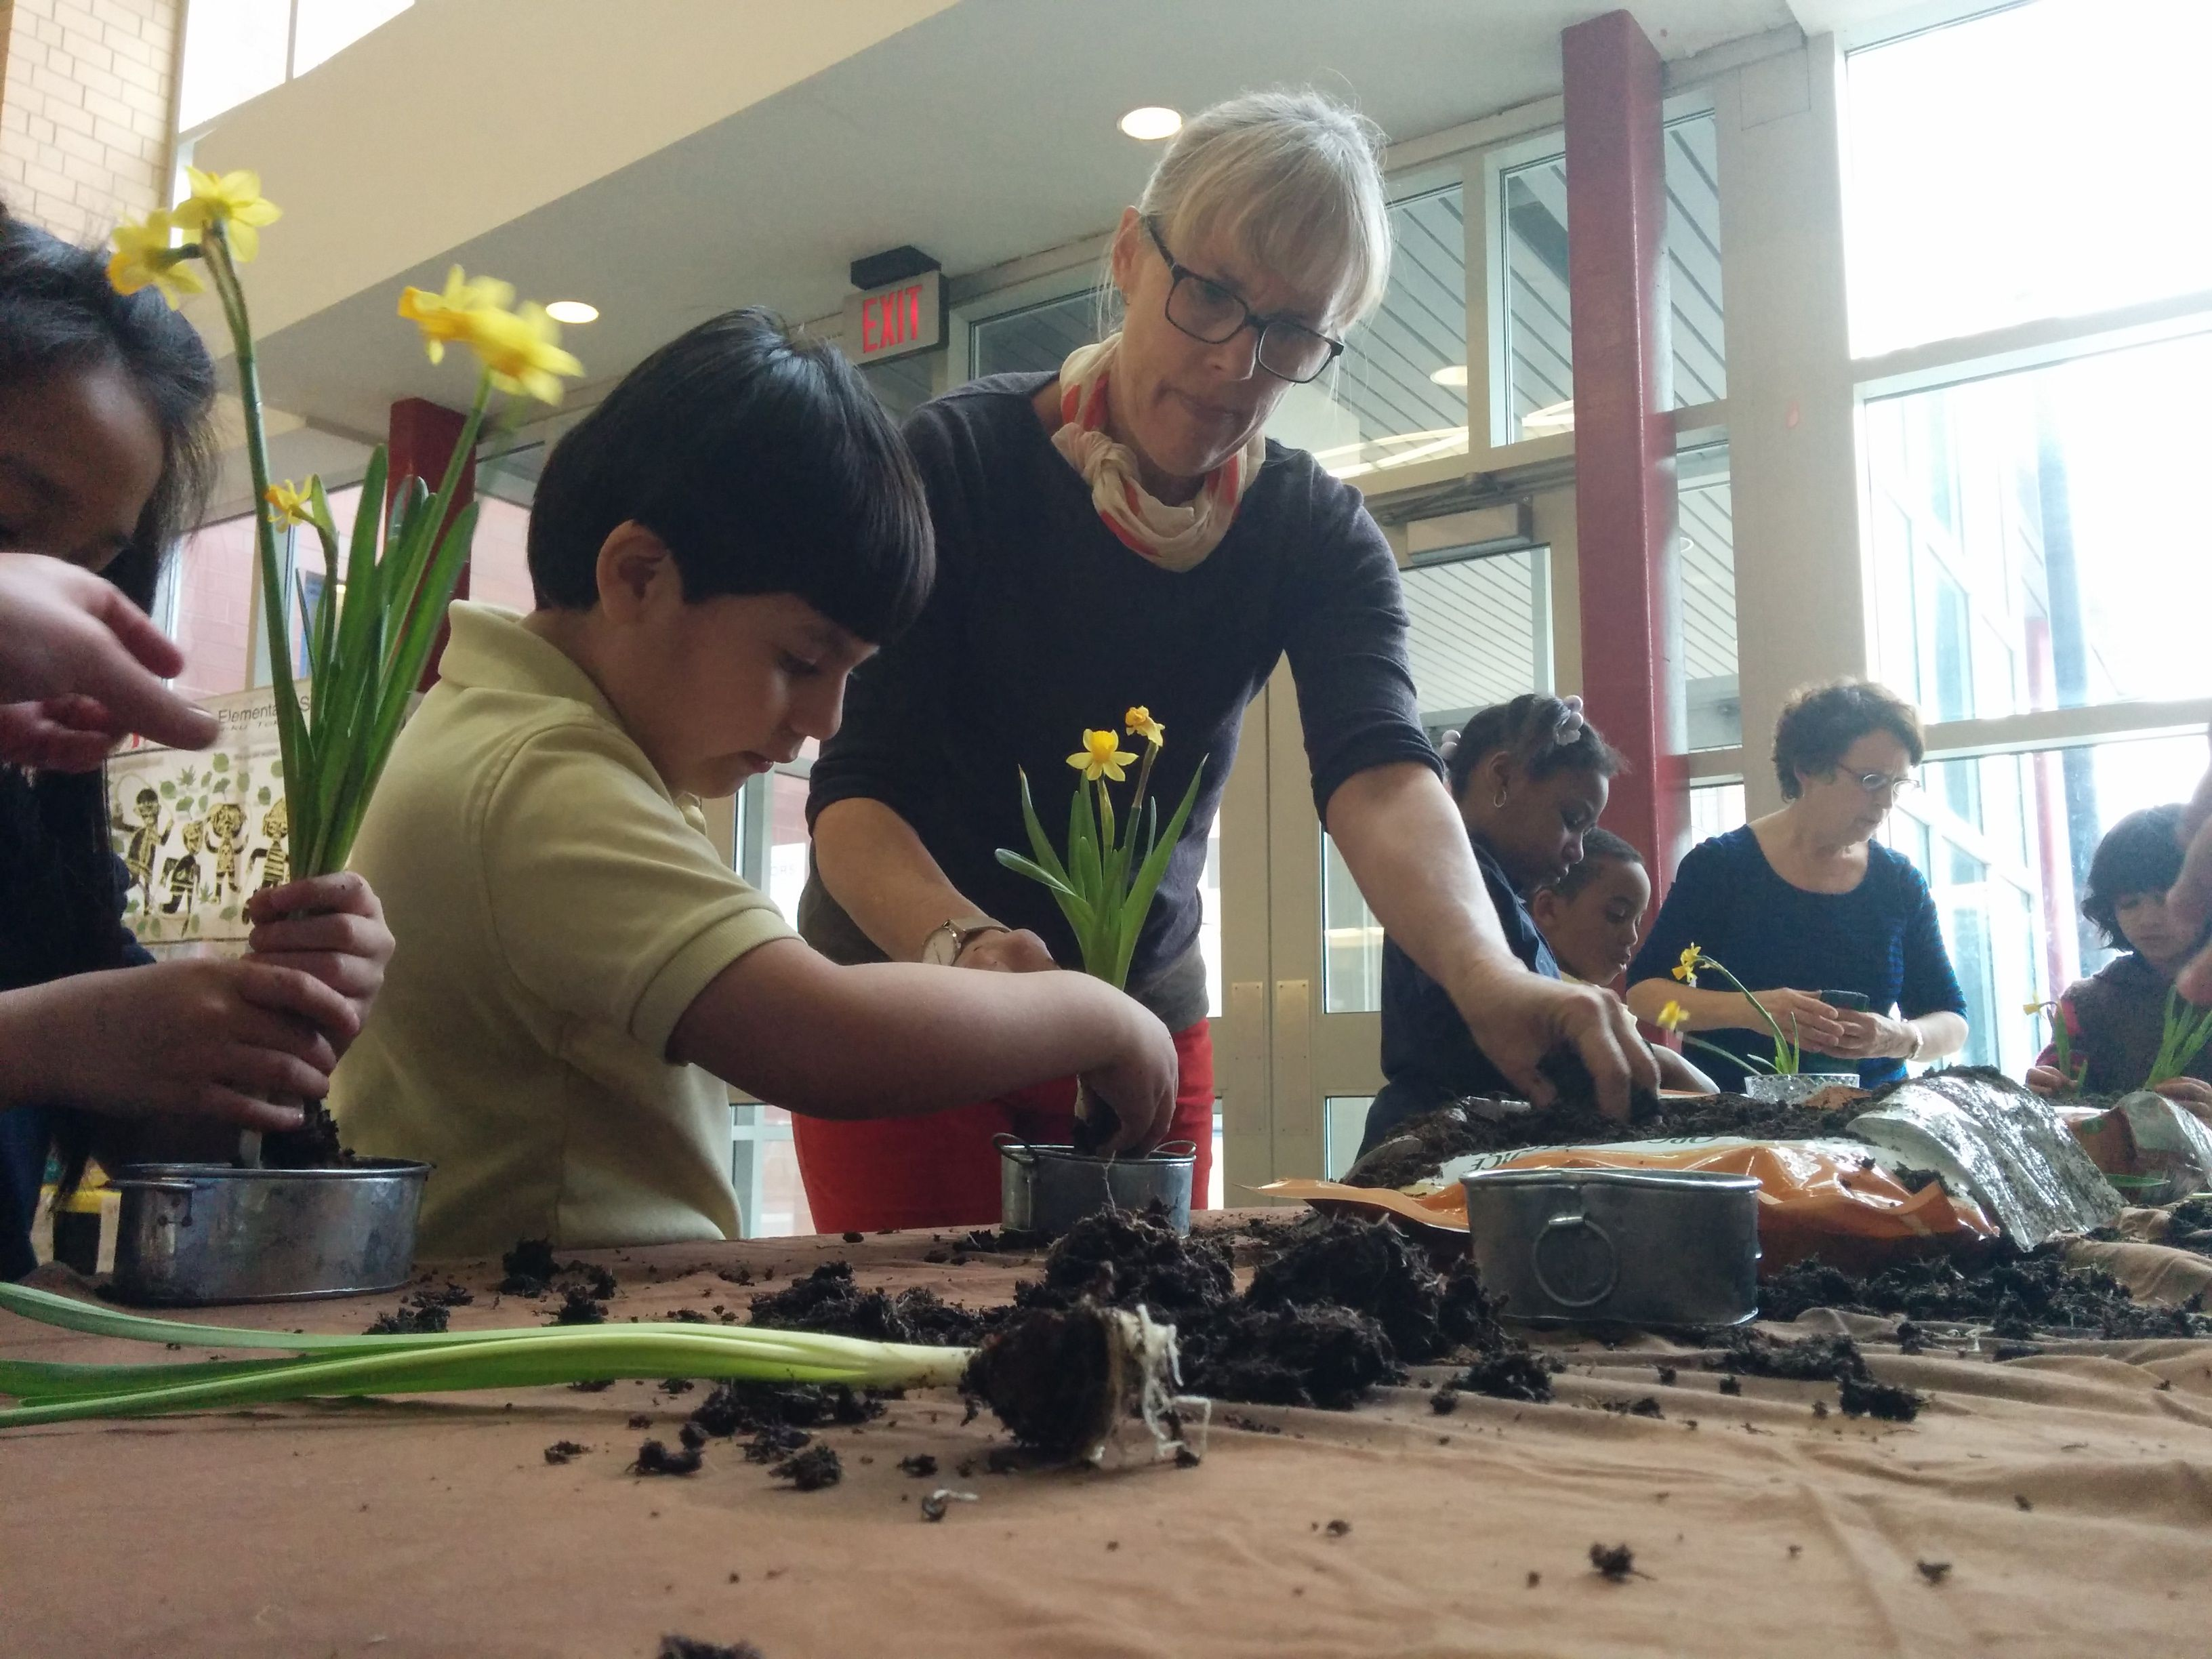 Afterschool Programs | Waldorf-based, Arts-Integrated Learning Experience | Cairn Hill for Urban Communities